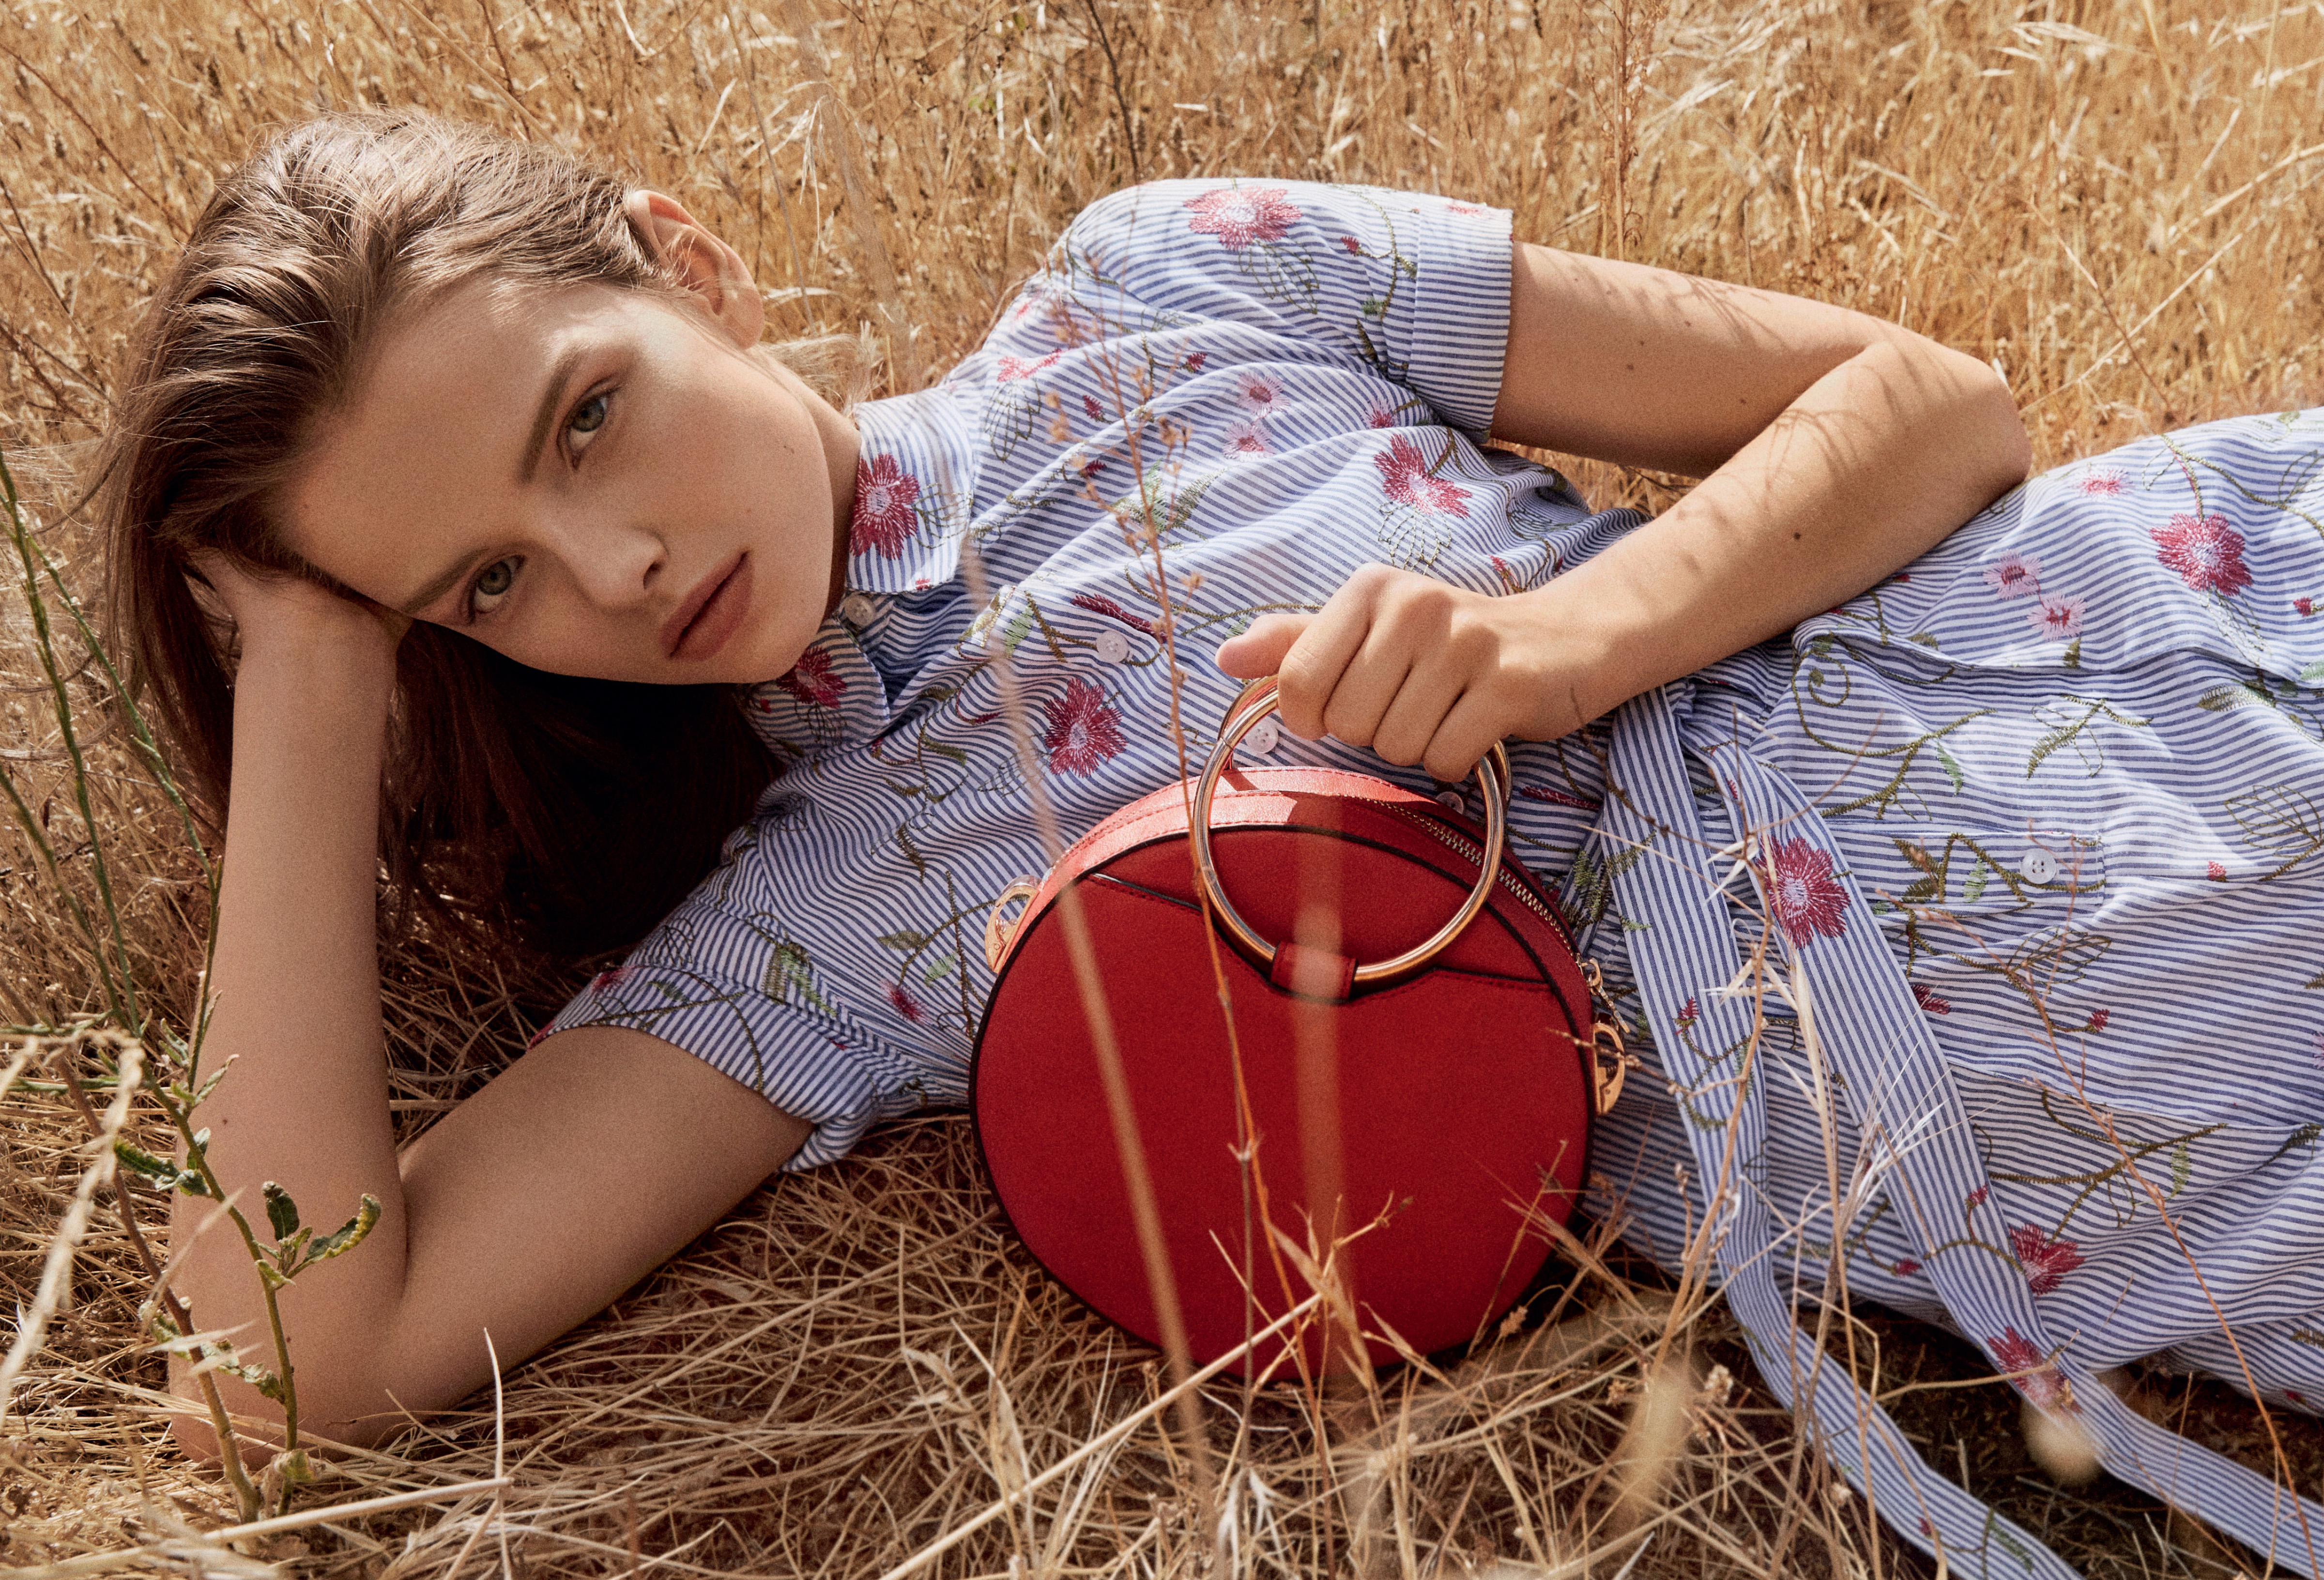 Handbag brands that rely on Chinese production have gained some tariff breathing room.